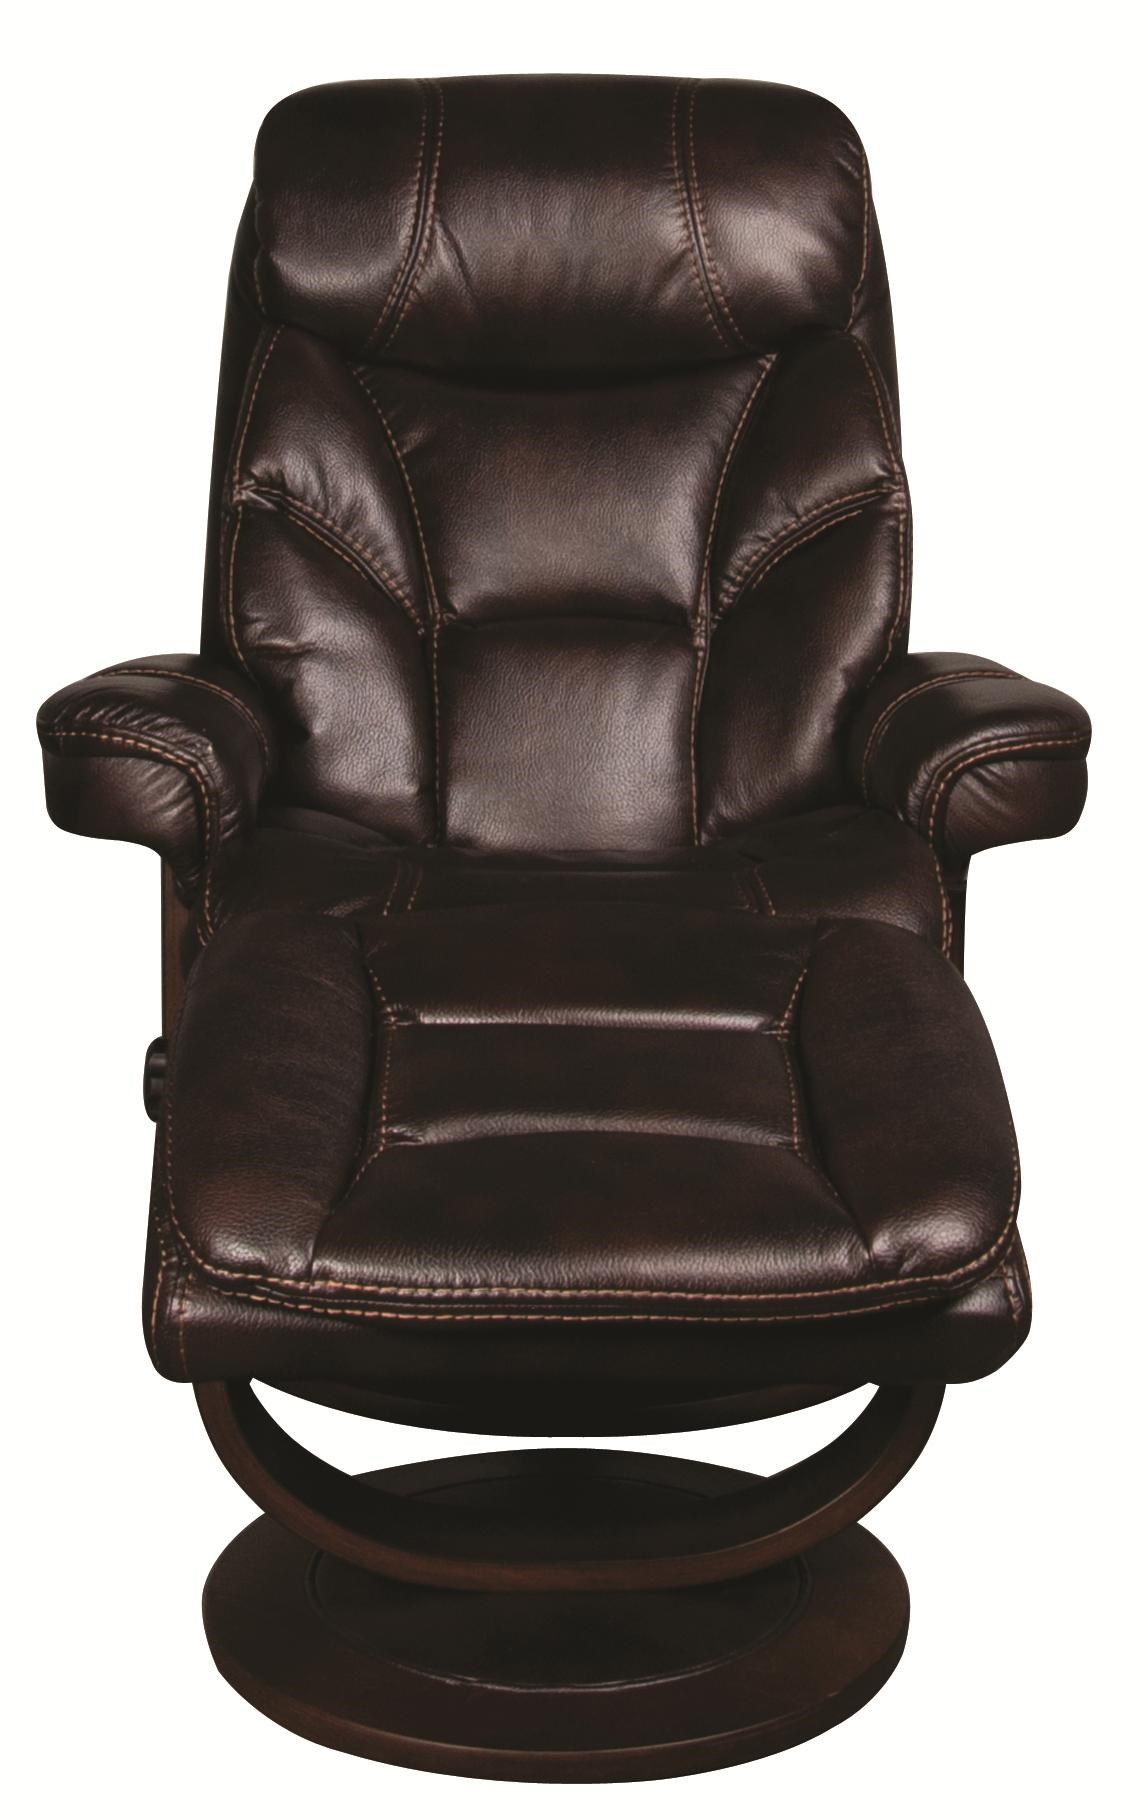 ... Morris Home SaulSaul Swivel Recliner With Ottoman ...